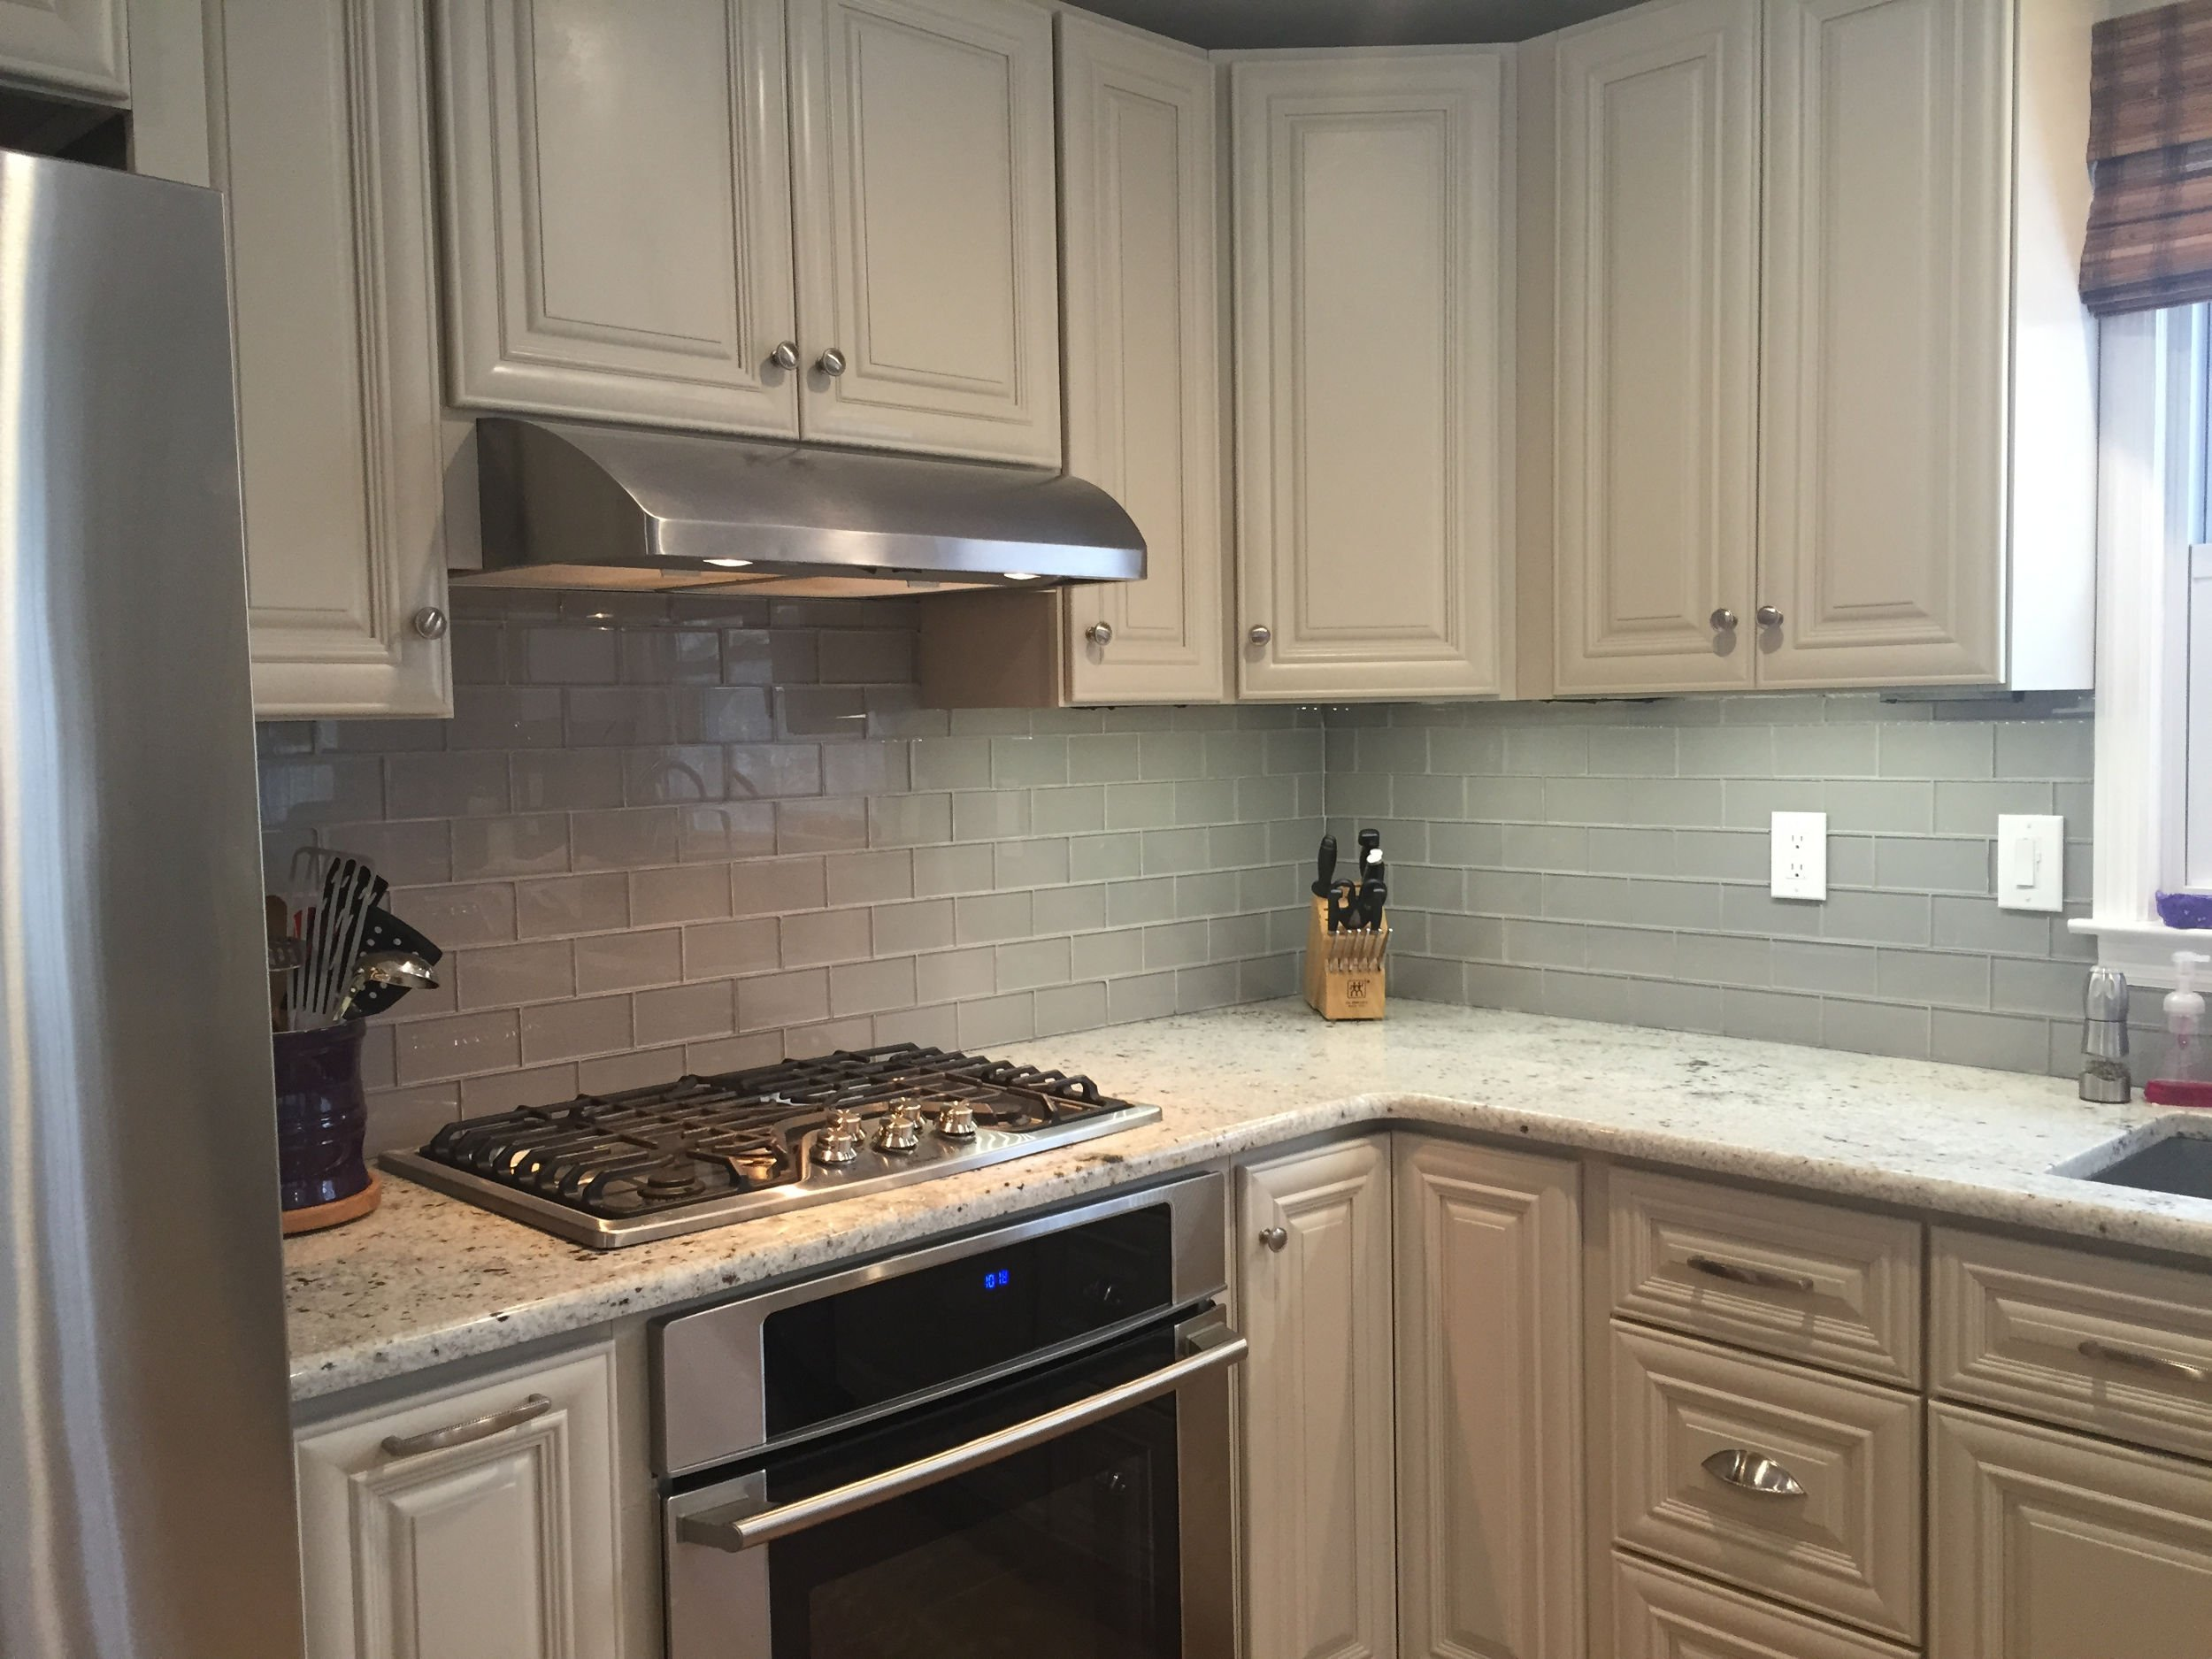 75 kitchen backsplash ideas for 2018 tile glass metal etc gray kitchen backsplash white dailygadgetfo Choice Image